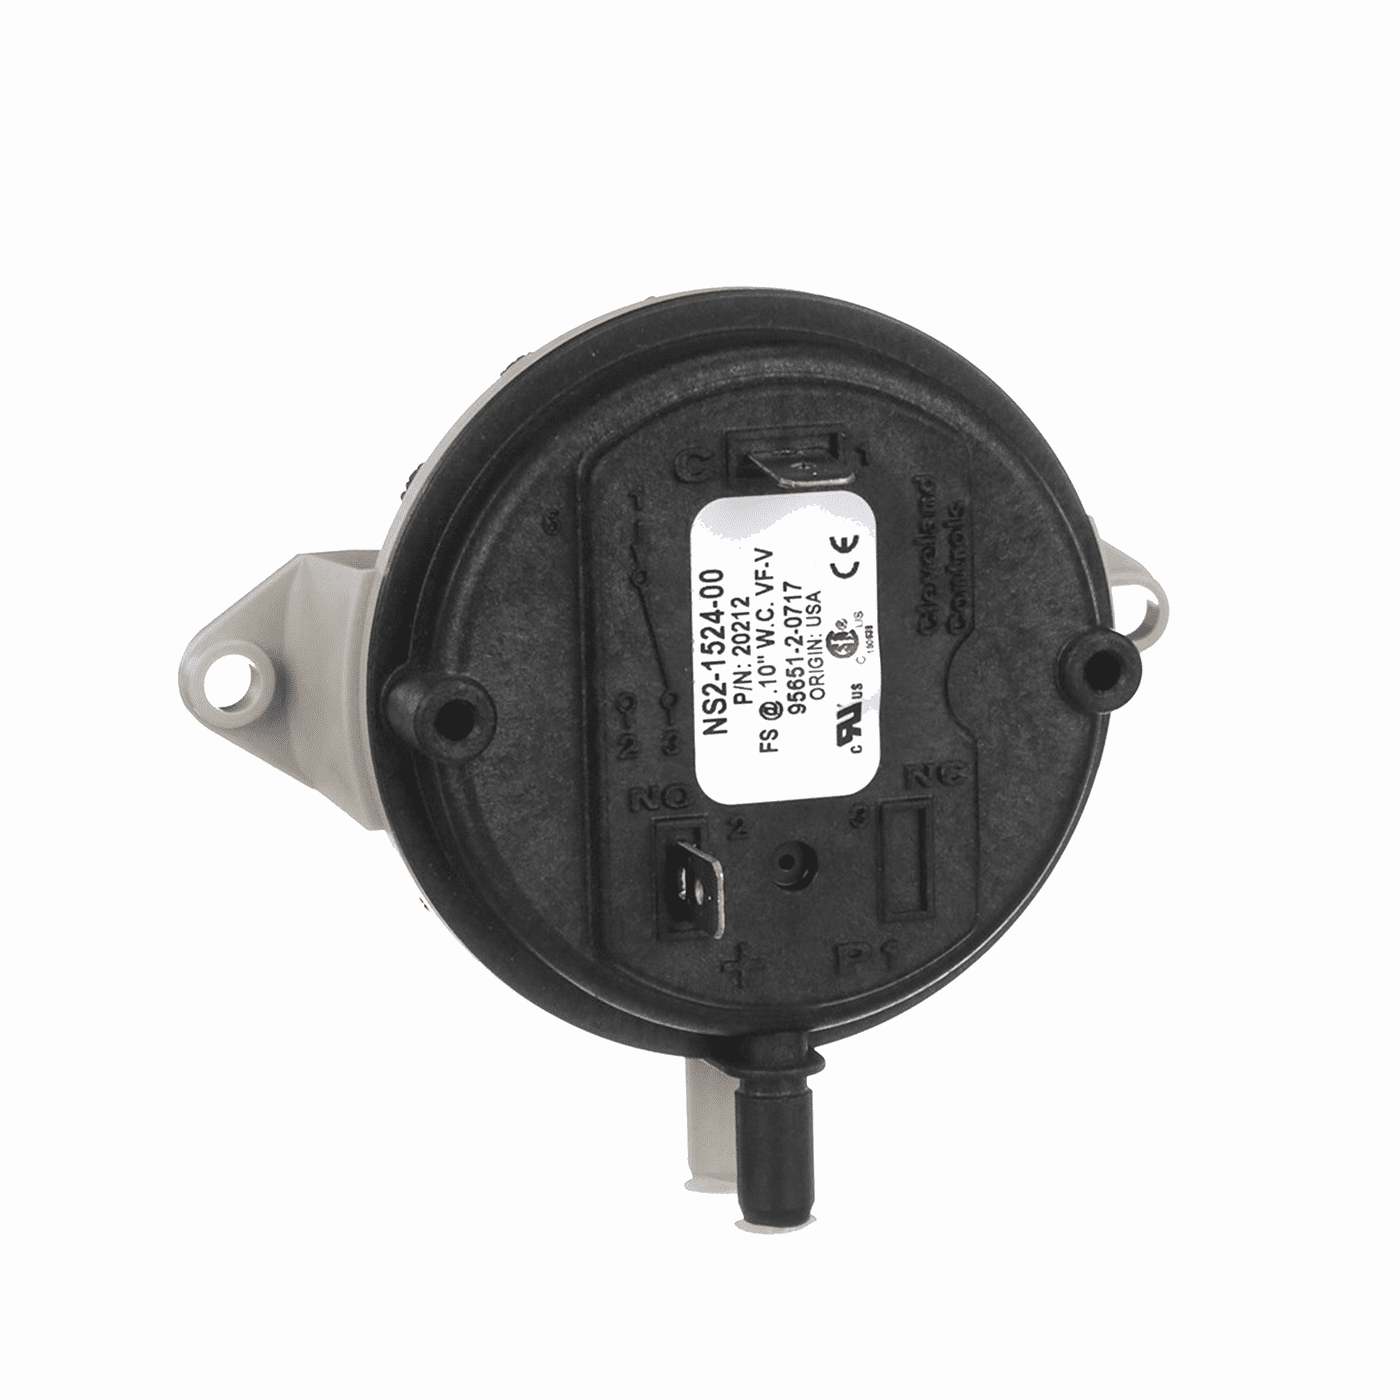 H5889-AMP | Winslow Country Stove Vacuum Switch, H5889-AMP